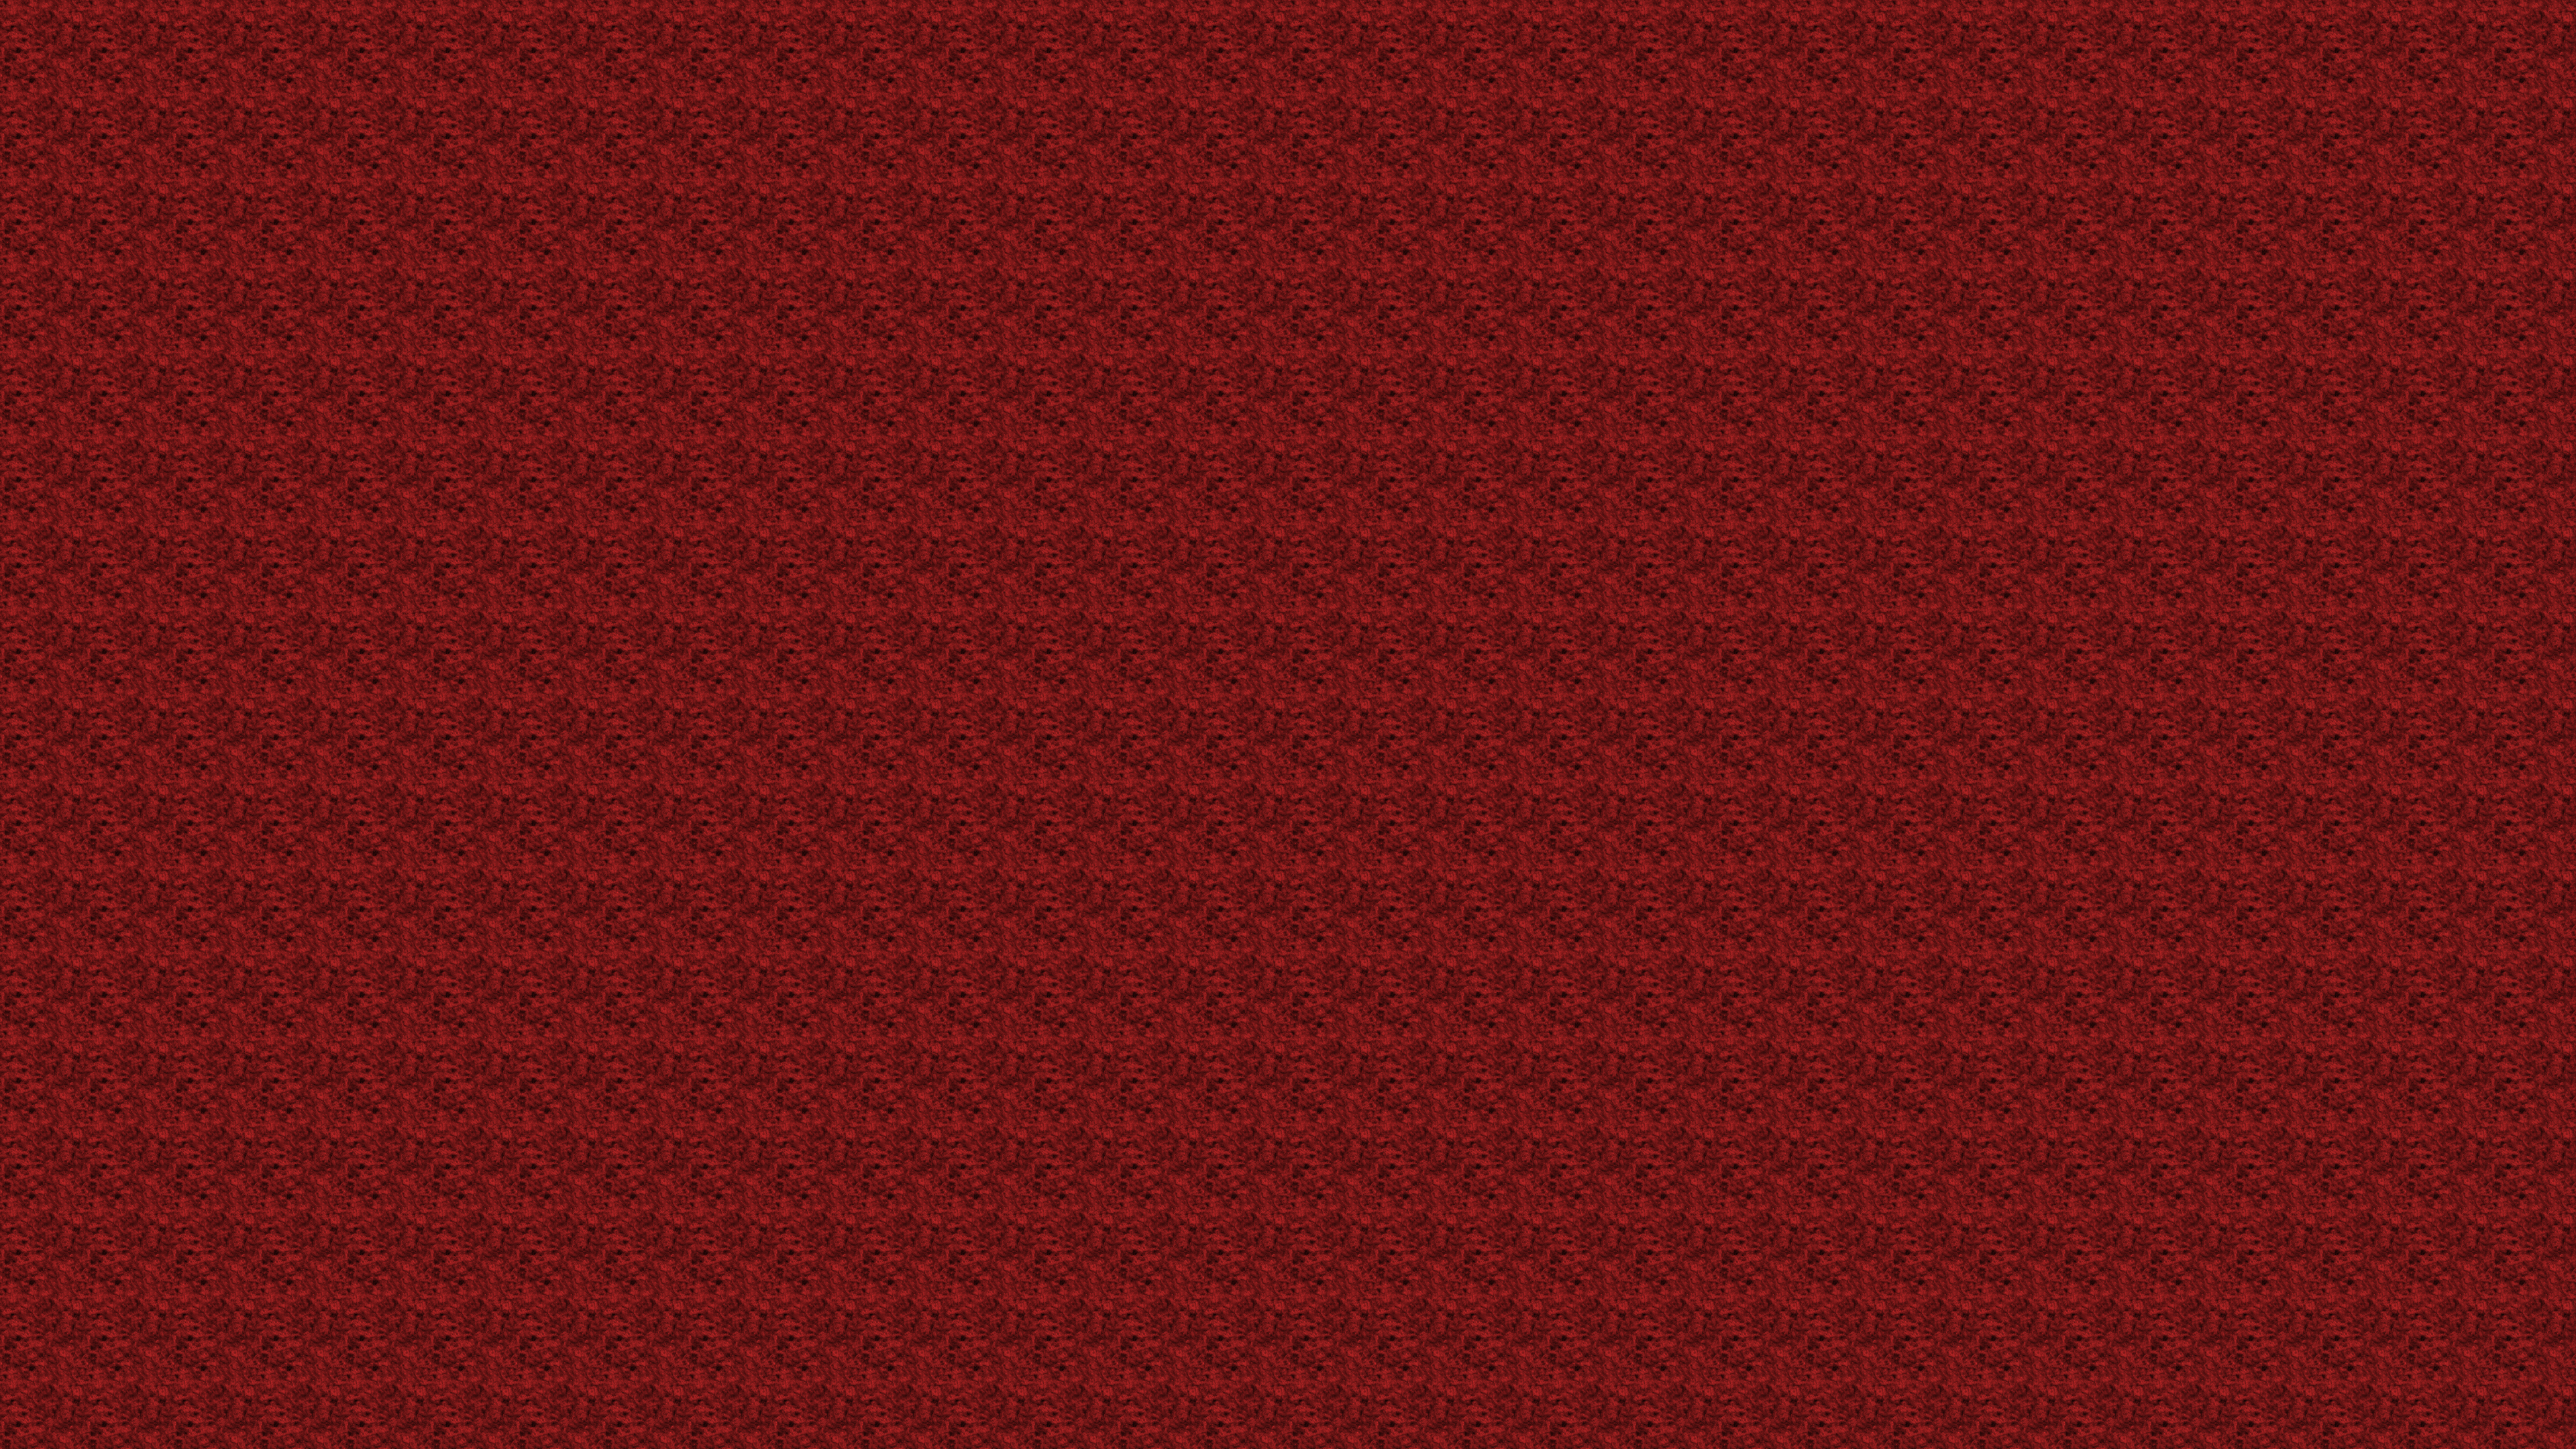 backgroundtexture.png